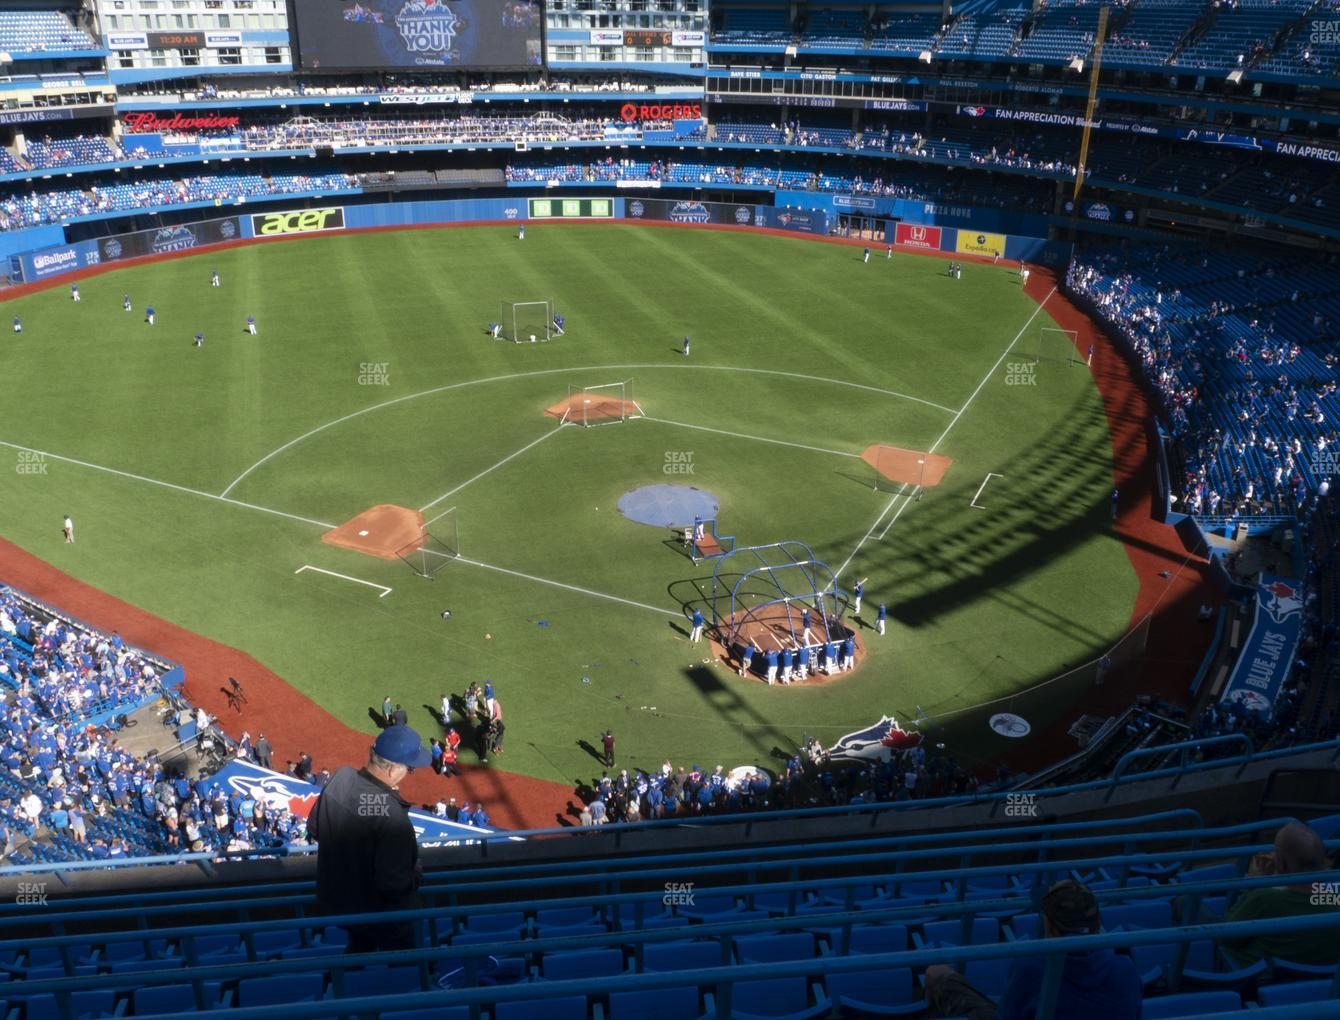 Toronto Blue Jays at Rogers Centre Section 526 L View